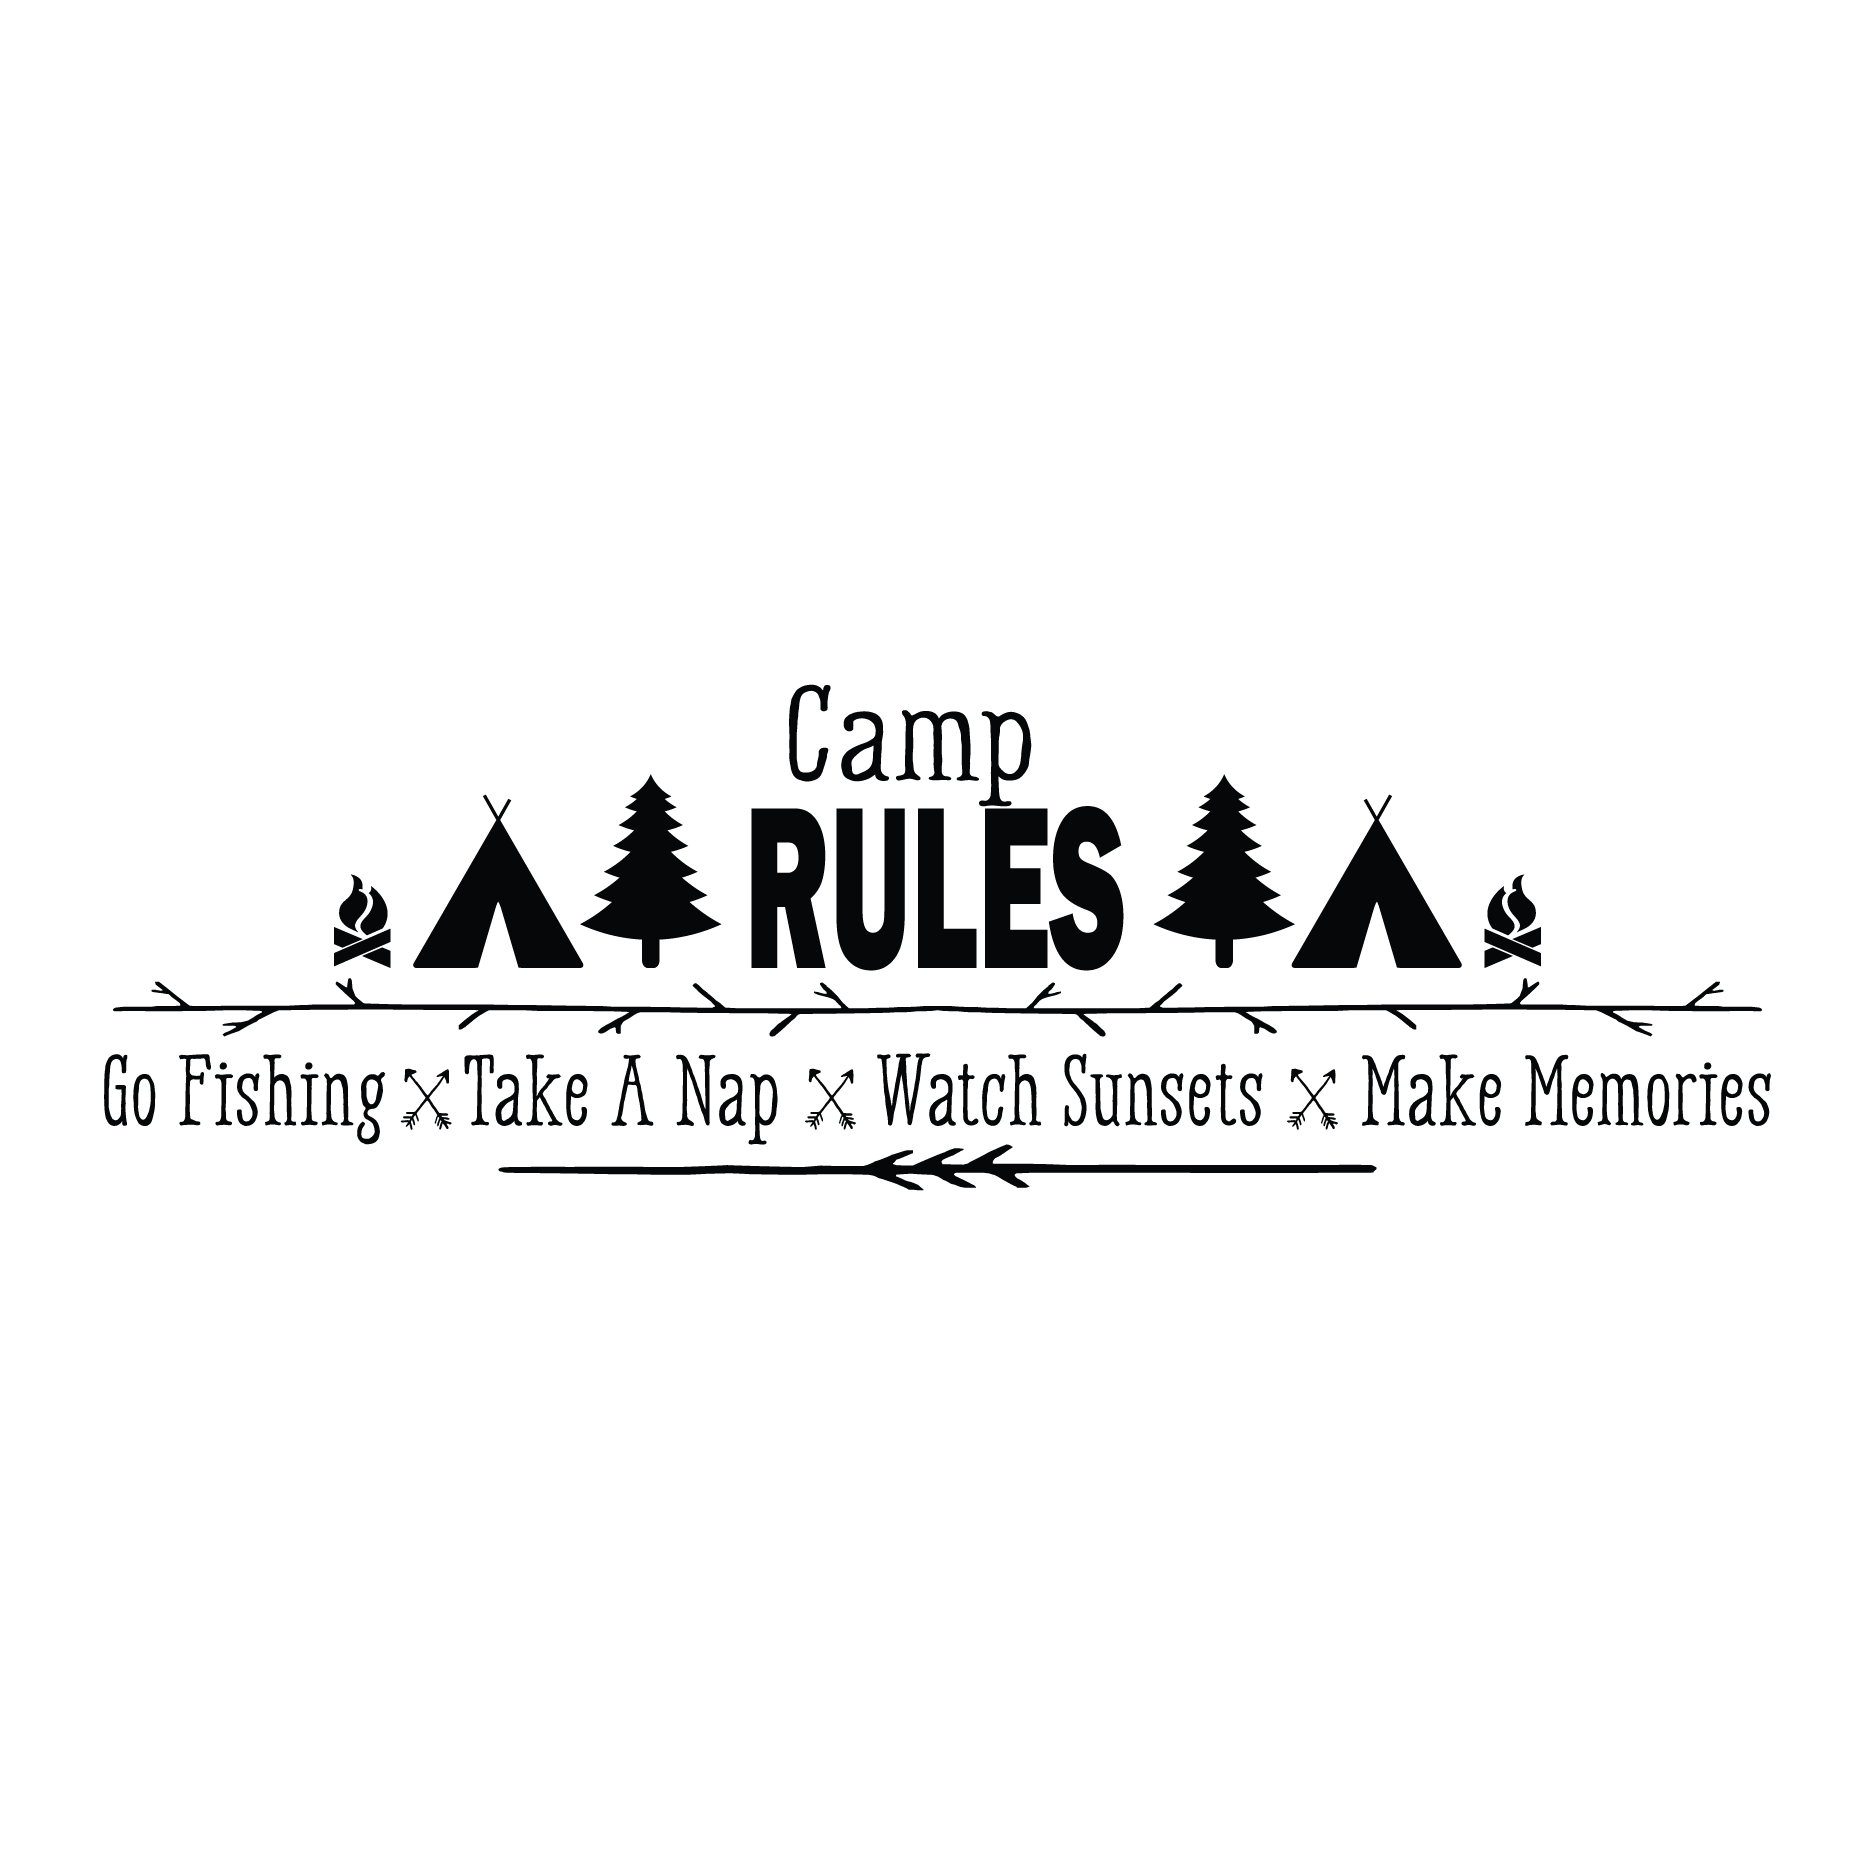 Camp Rules Wall Quotes Decal Wallquotes Com